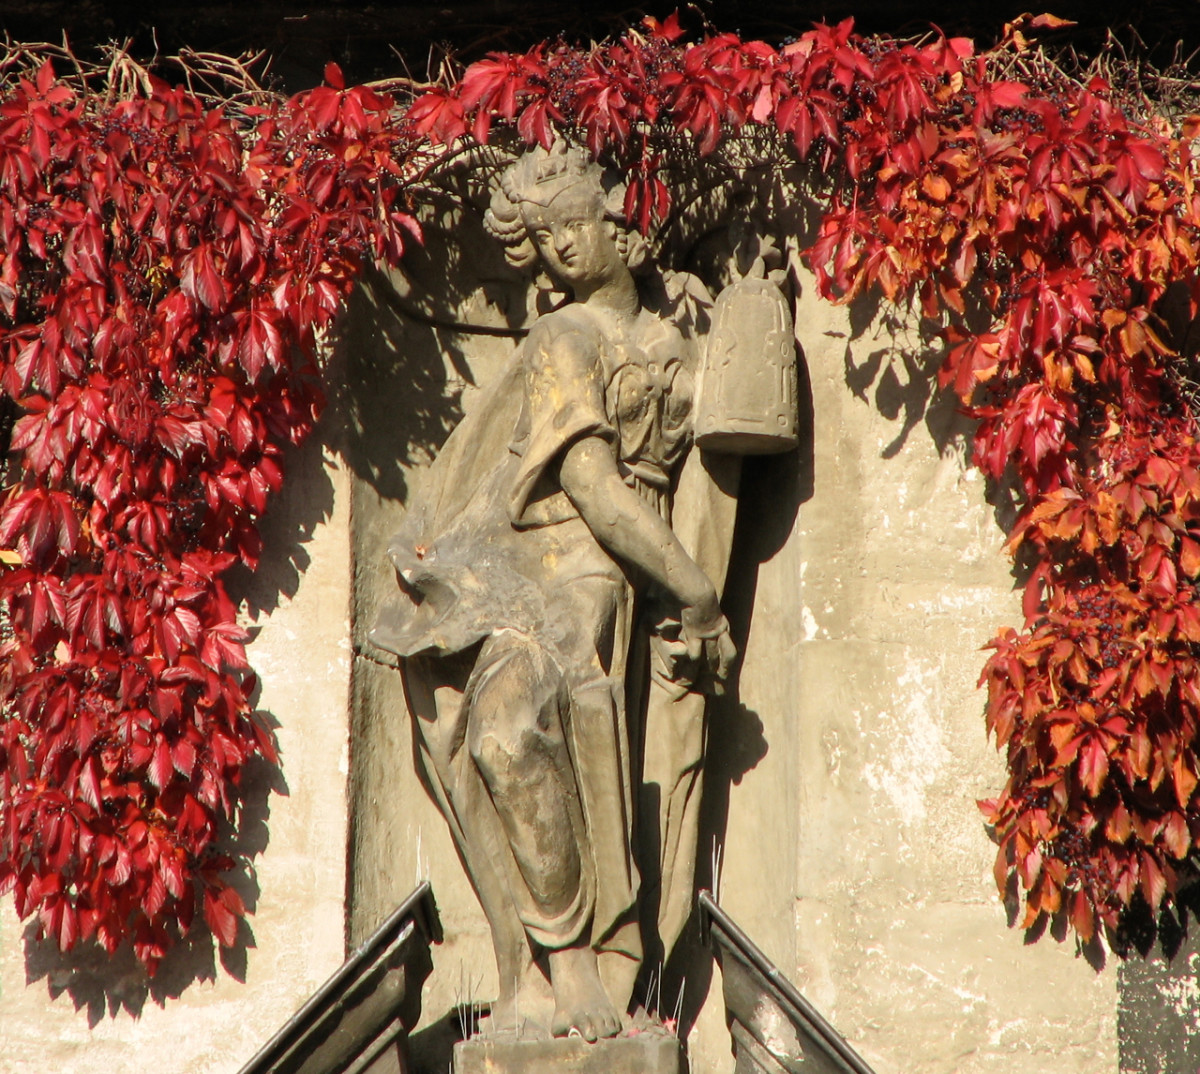 A beautiful red vine framing the statue on the old town hall in Quedlinburg, Germany.